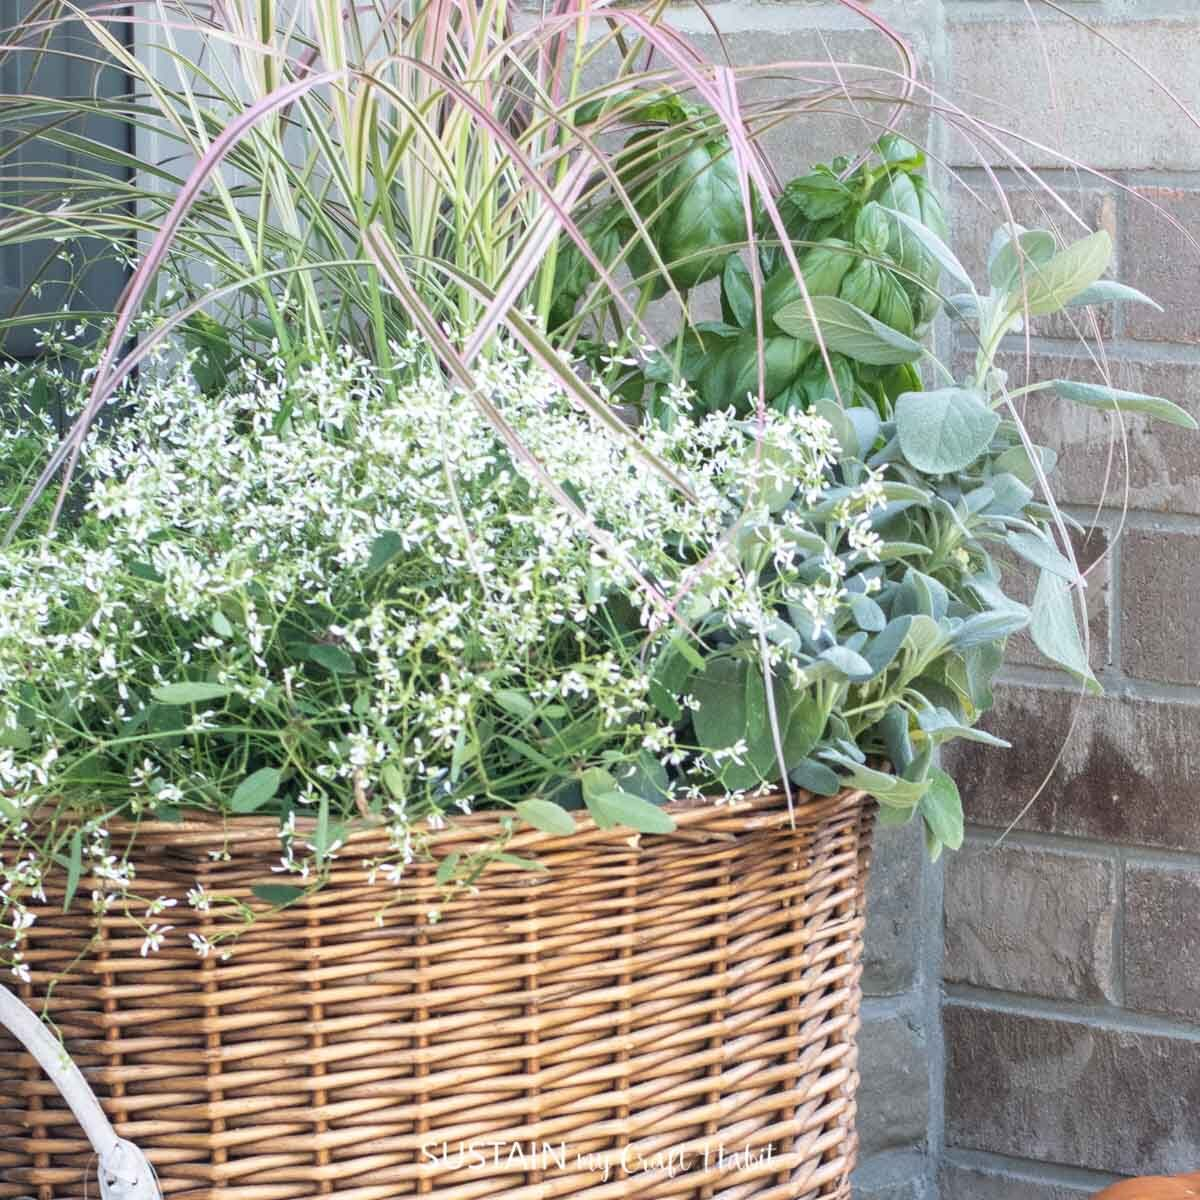 Assorted herbs placed in a wicker basket planter.